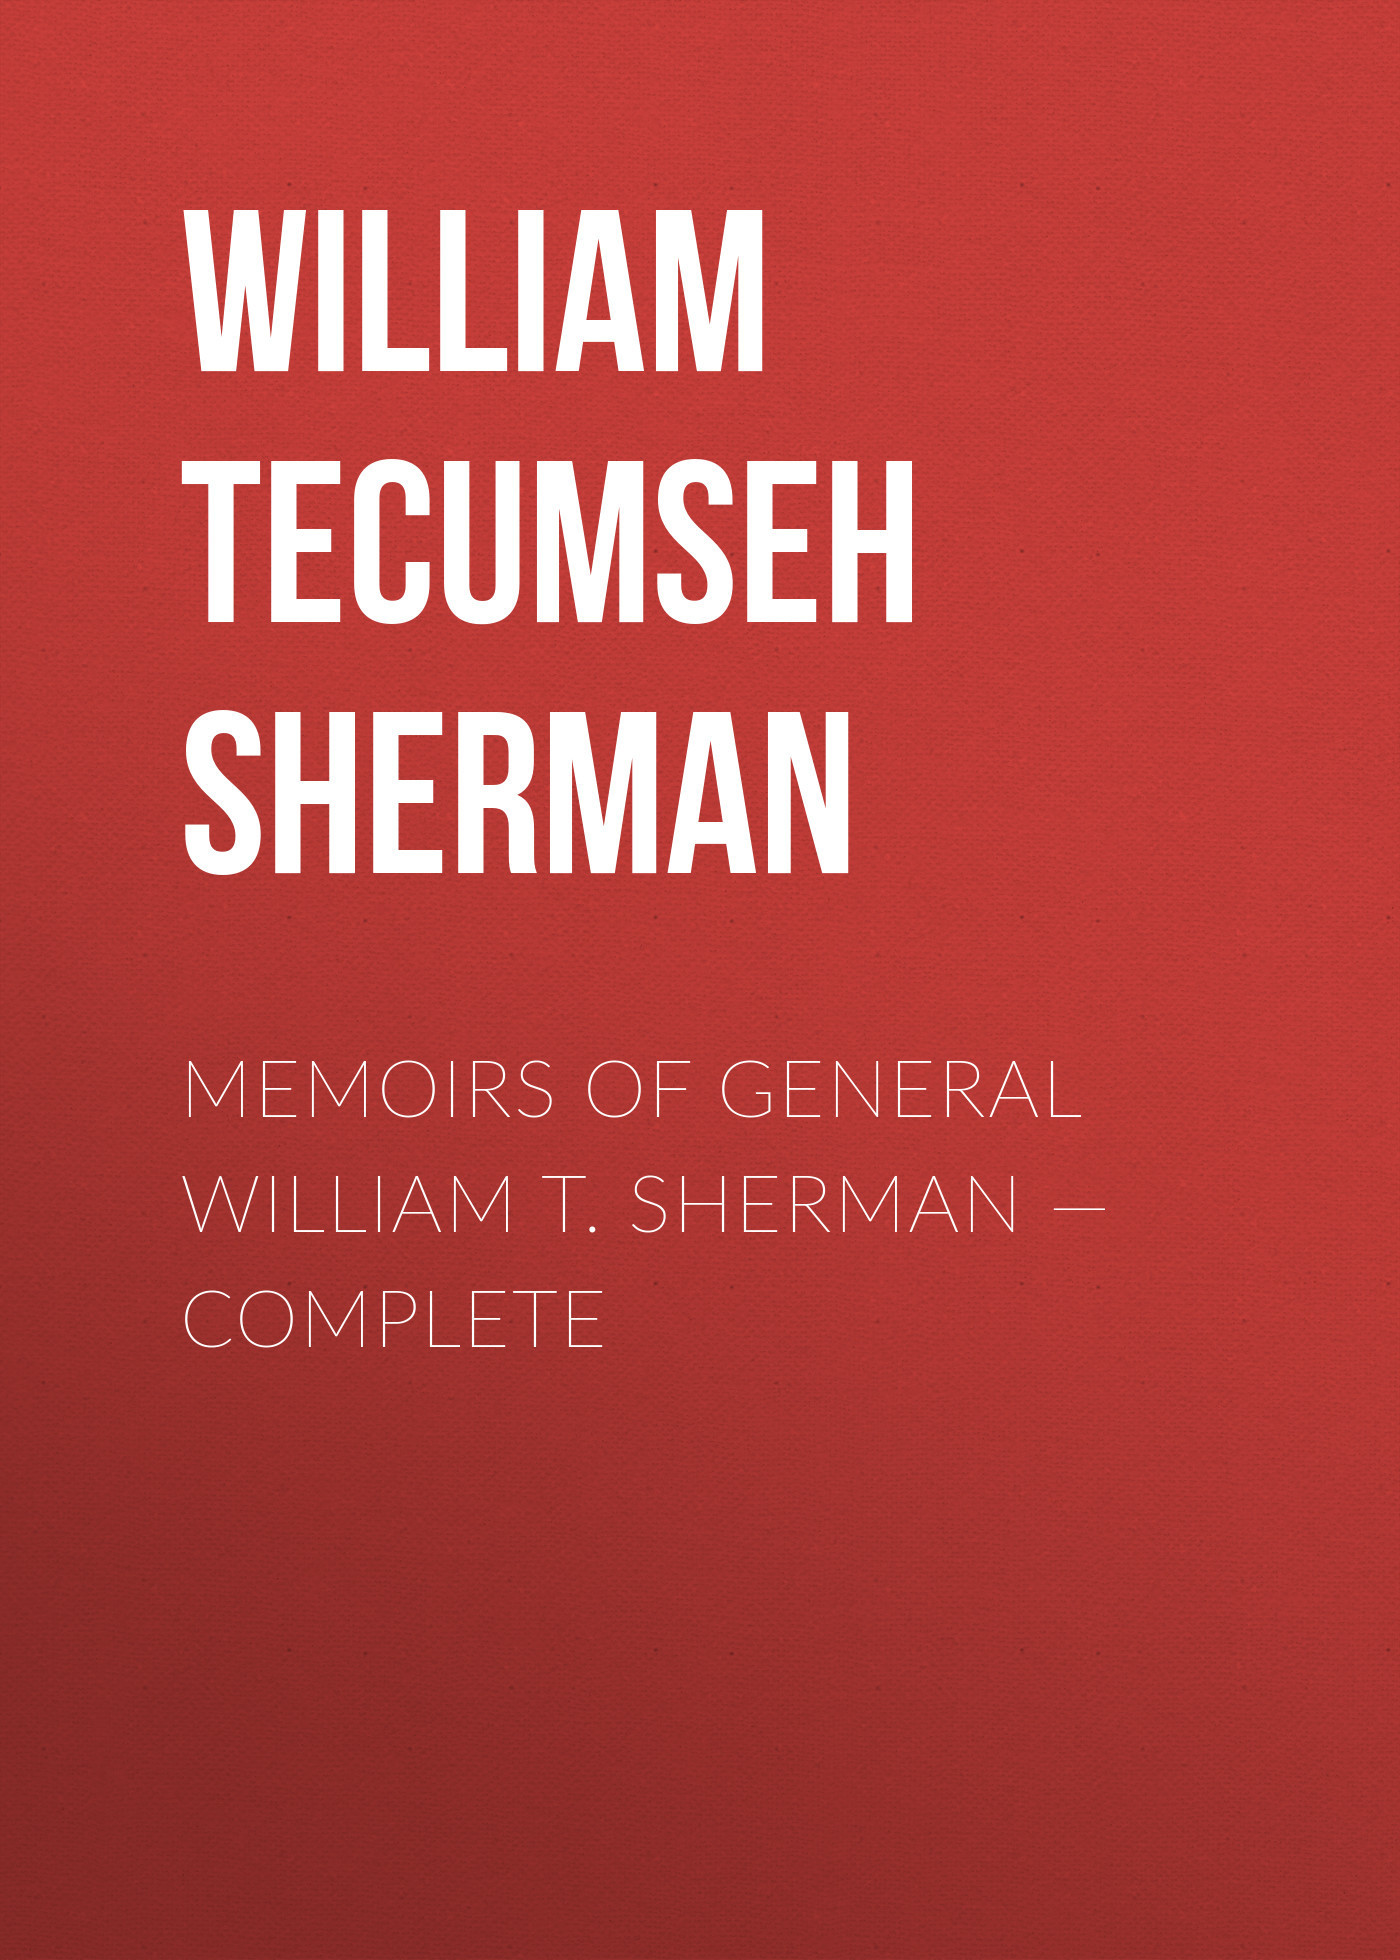 William Tecumseh Sherman Memoirs of General William T. Sherman — Complete looking after william